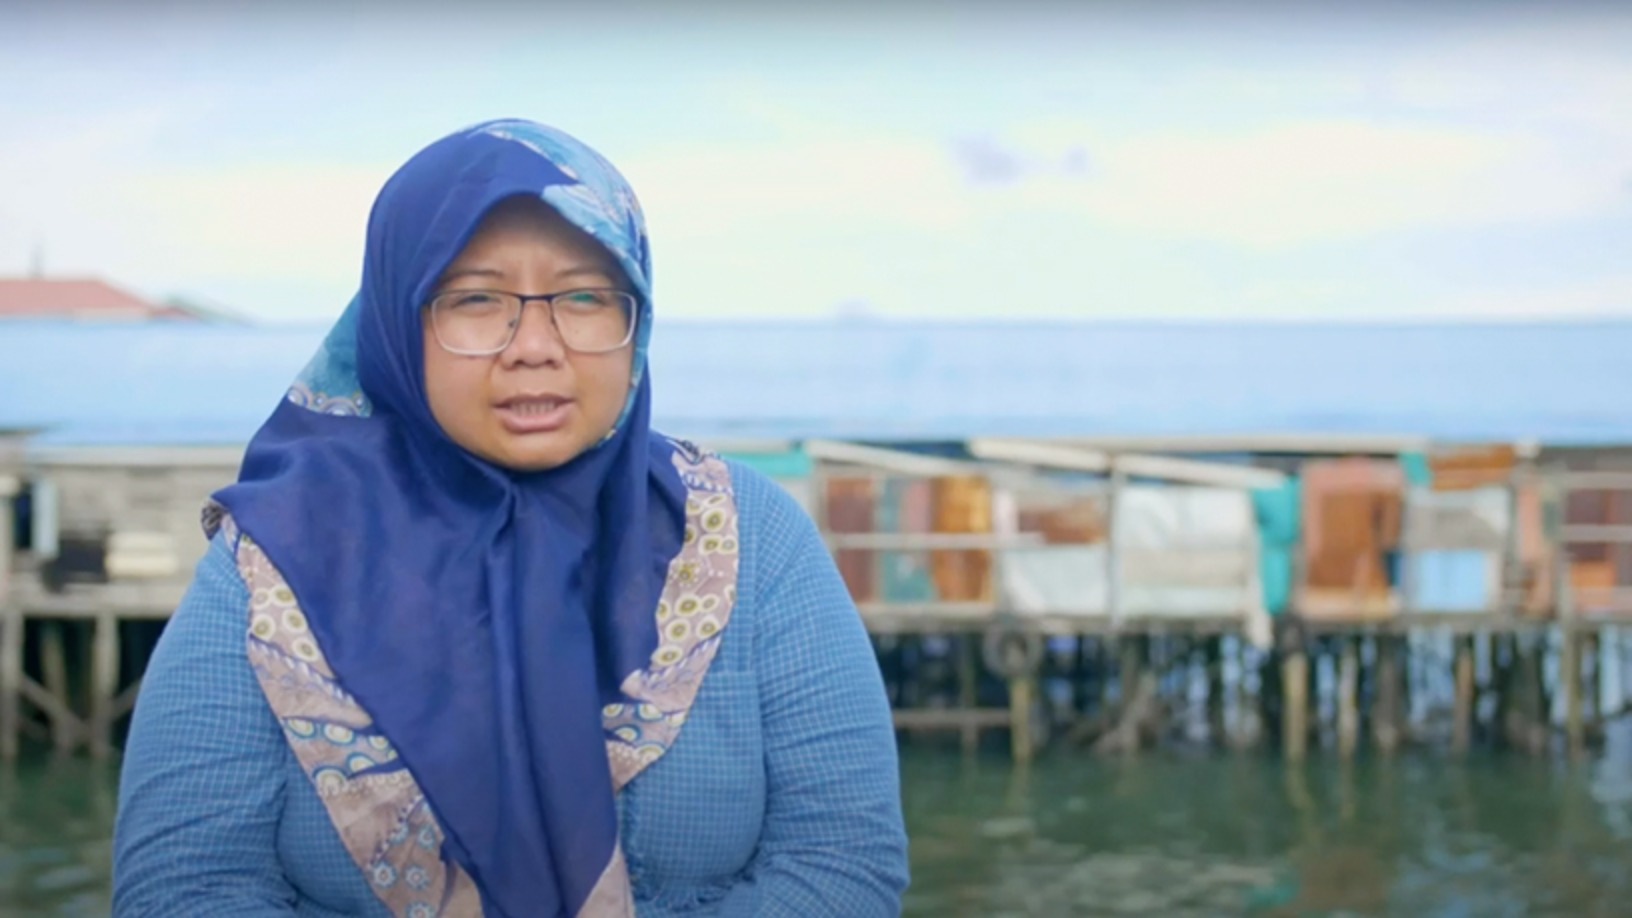 """We were almost chased out"": Aruna co-founder Utari Octavianty on empowering Indonesia's fishing villages"